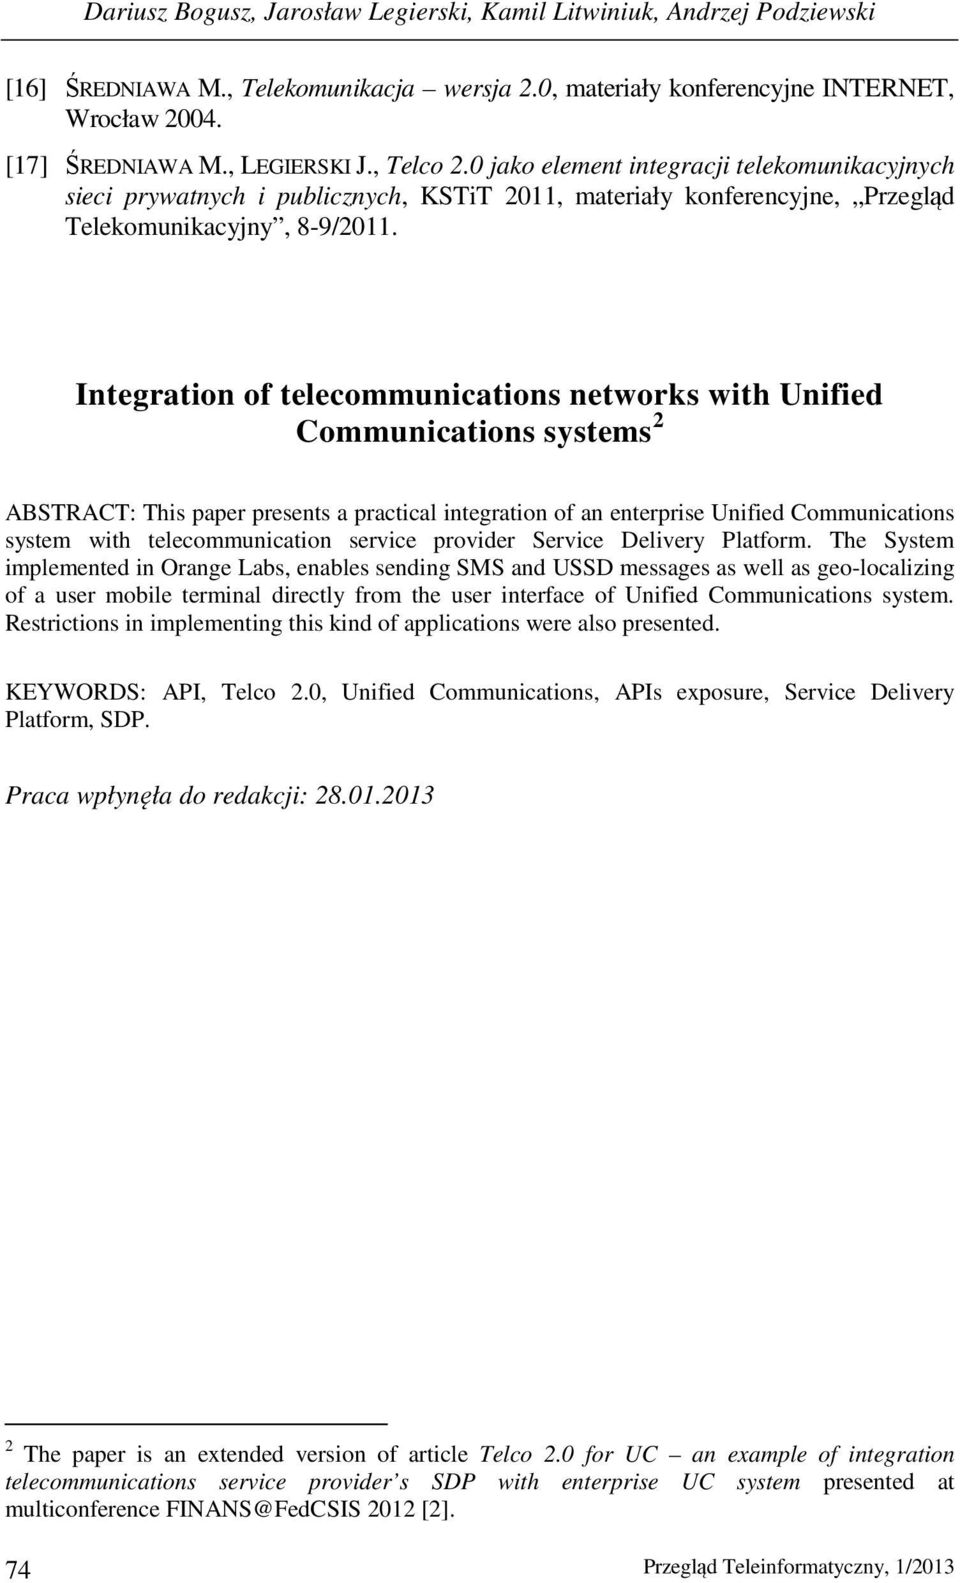 Integration of telecommunications networks with Unified Communications systems 2 ABSTRACT: This paper presents a practical integration of an enterprise Unified Communications system with